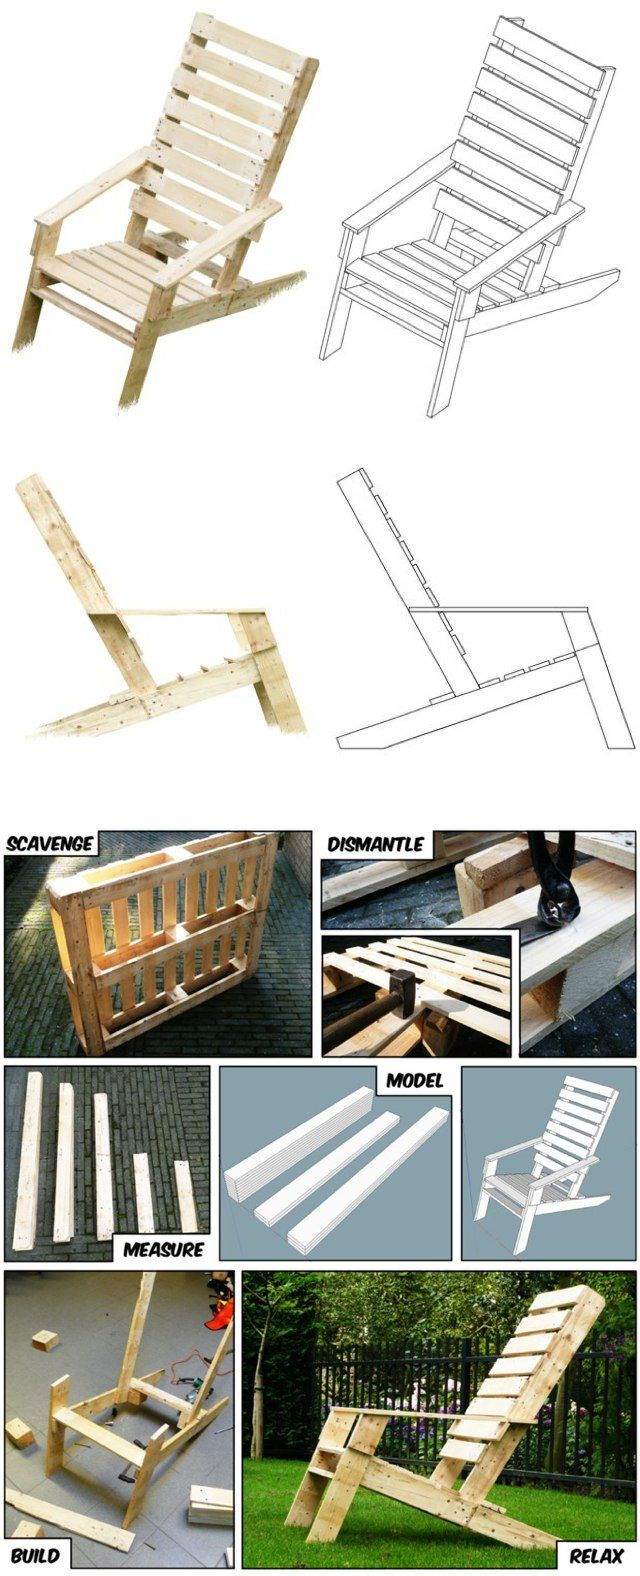 diy outdoor pallet furniture. Transform Your Patio And Backyard Into An Outdoor Living Area That You Can Enjoy With These 15 Easy DIY Pallet Furniture Ideas. Diy R